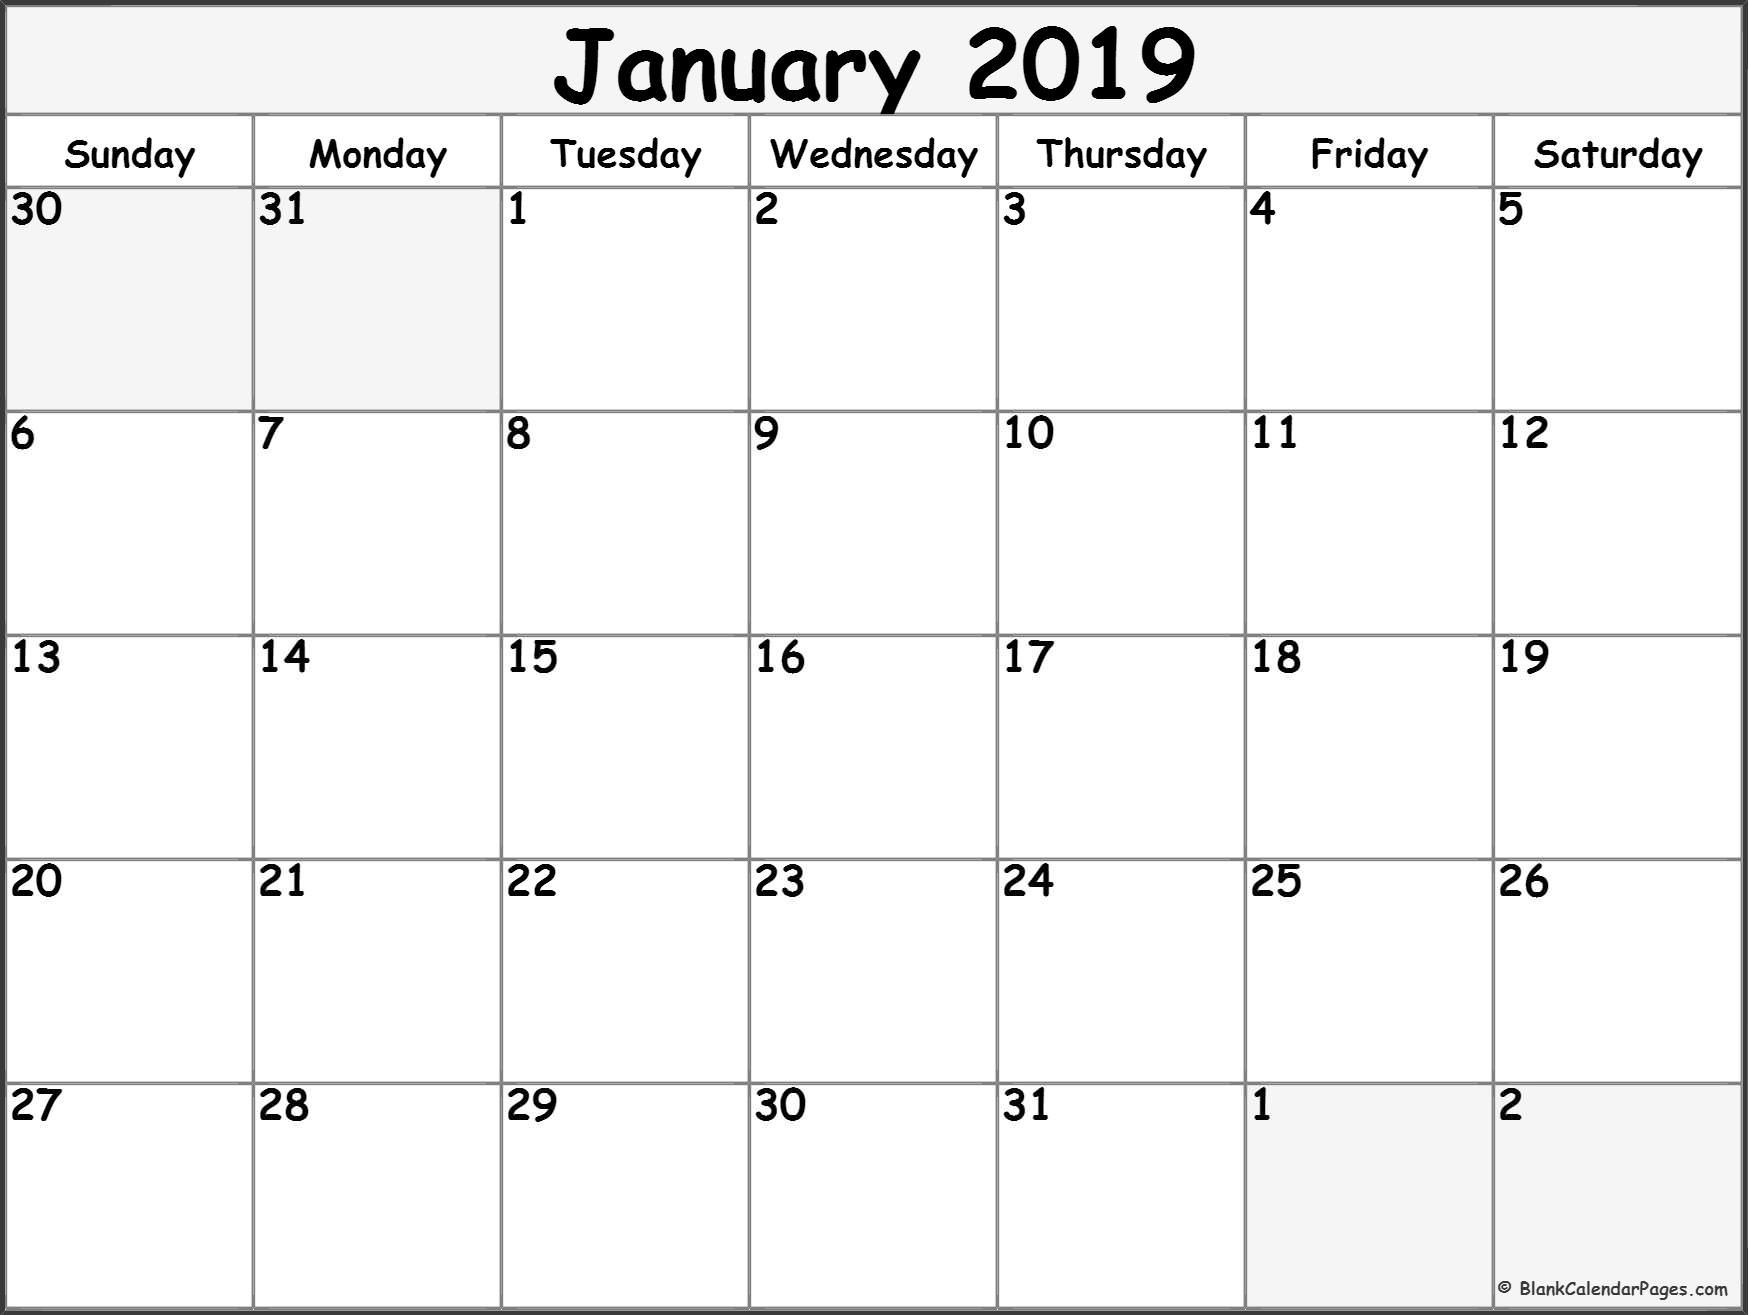 Large Blank Monthly Calendars January 2019 Printable Calendar | Jazz with regard to Large Blank Monthly Calendar To Fill In